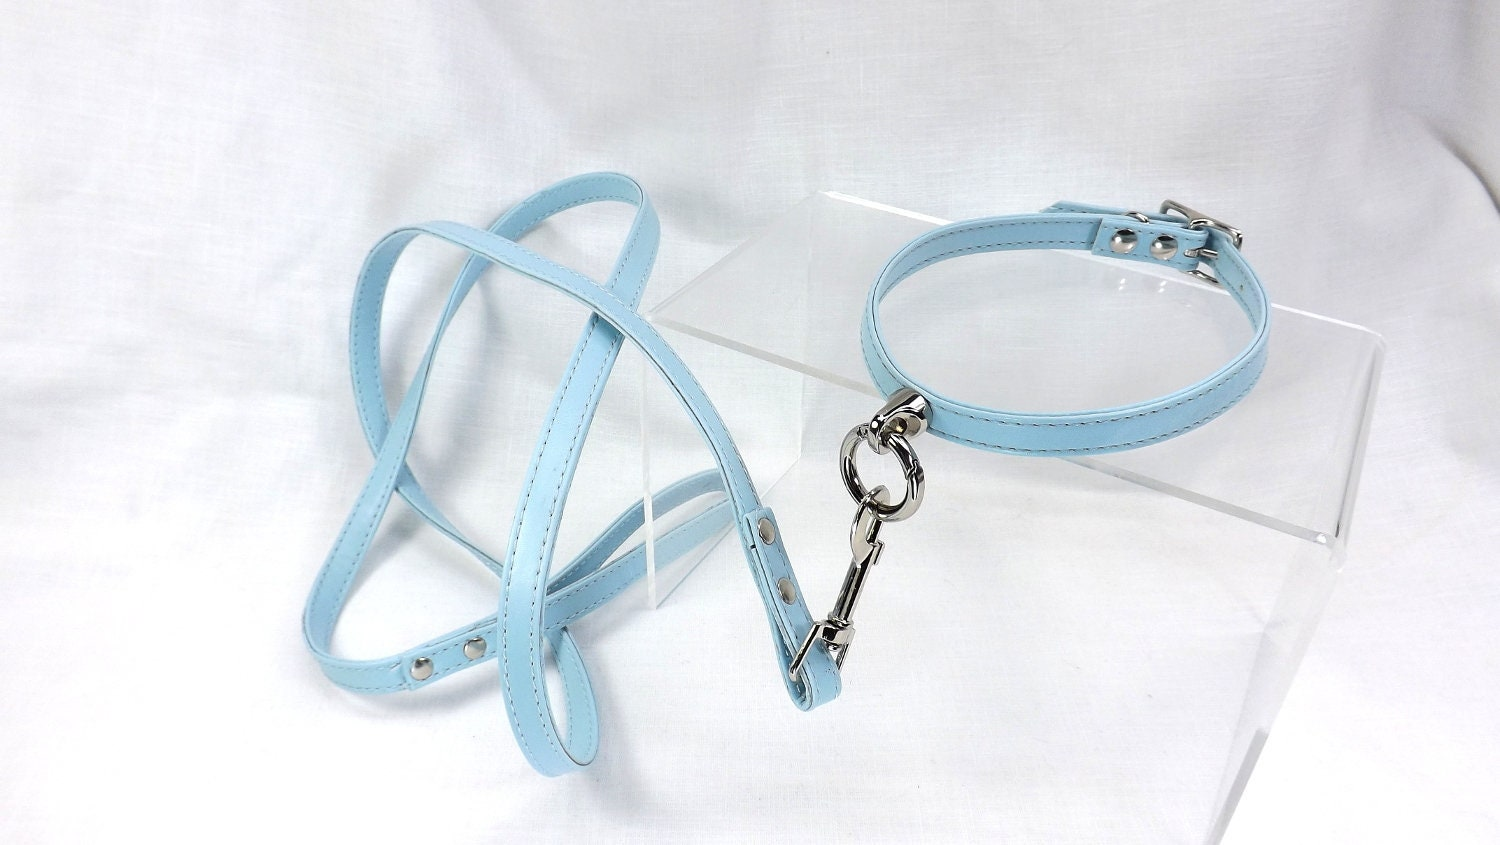 O ring Day Collar with leash slave Collar kitten play collar ddlg bdsm day collar and leash set - product image